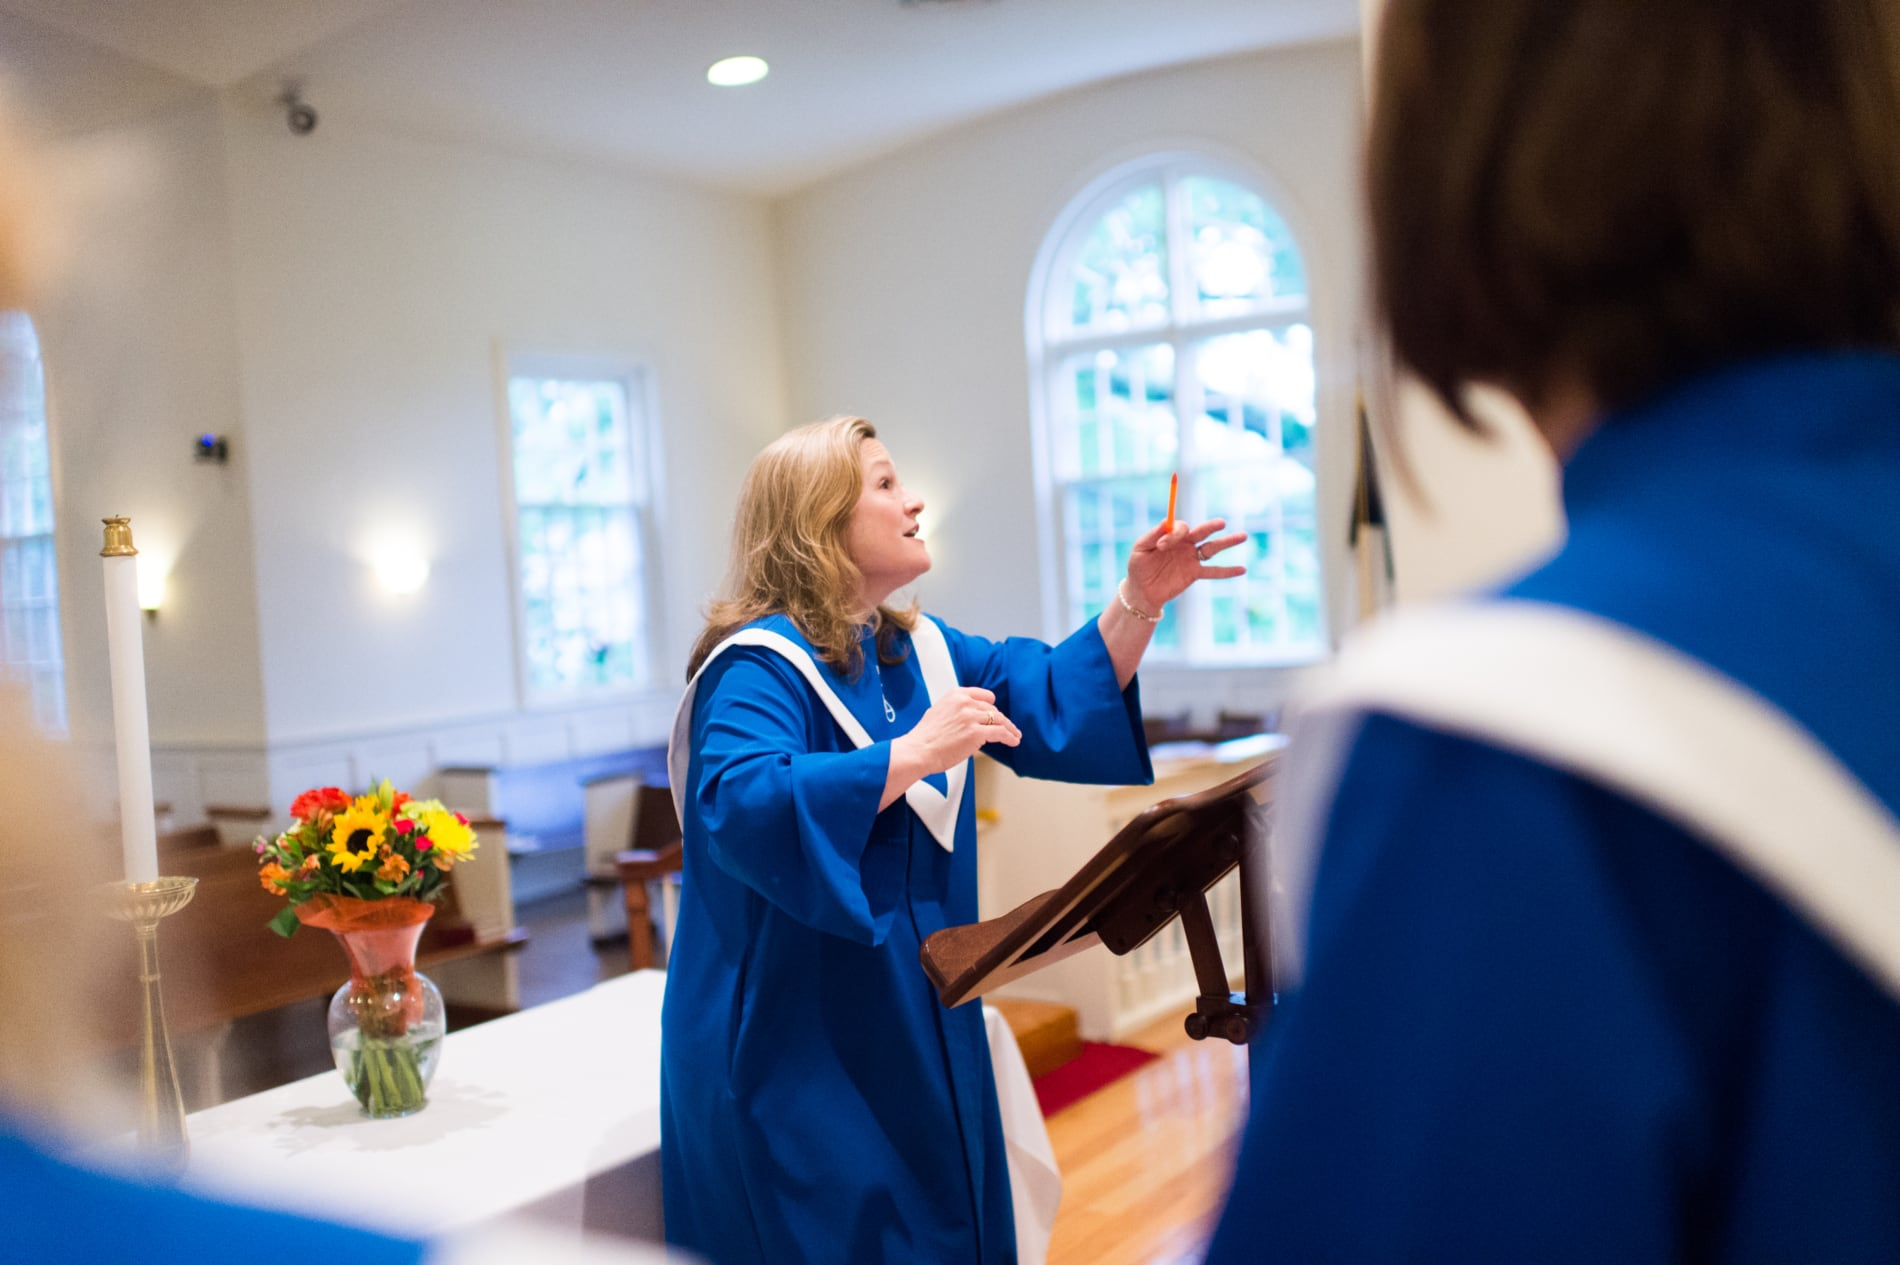 The director of music conducts the church choir